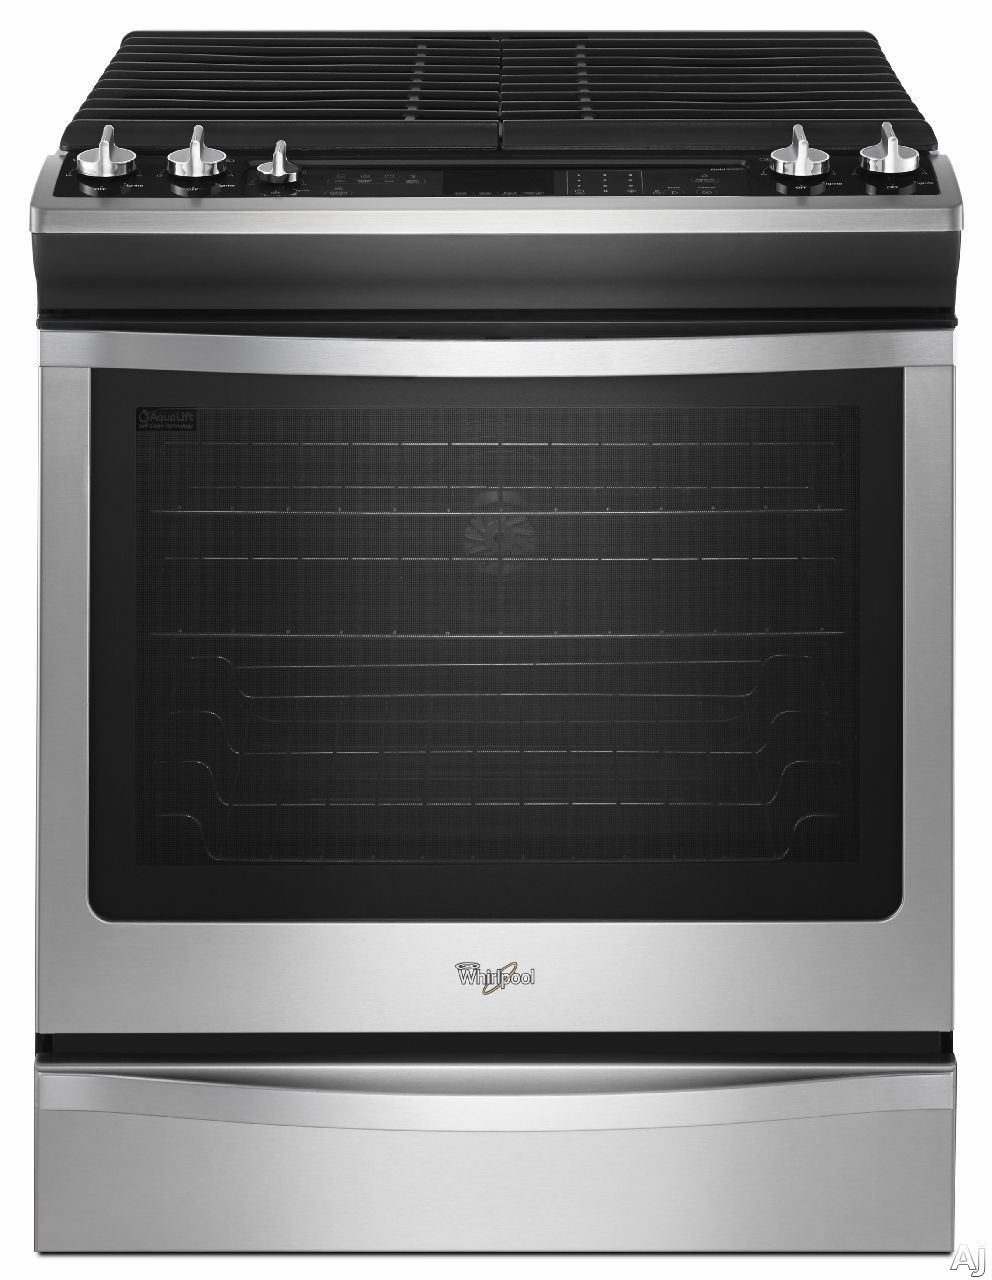 Whirlpool WEG730H0DS (With images) Convection range